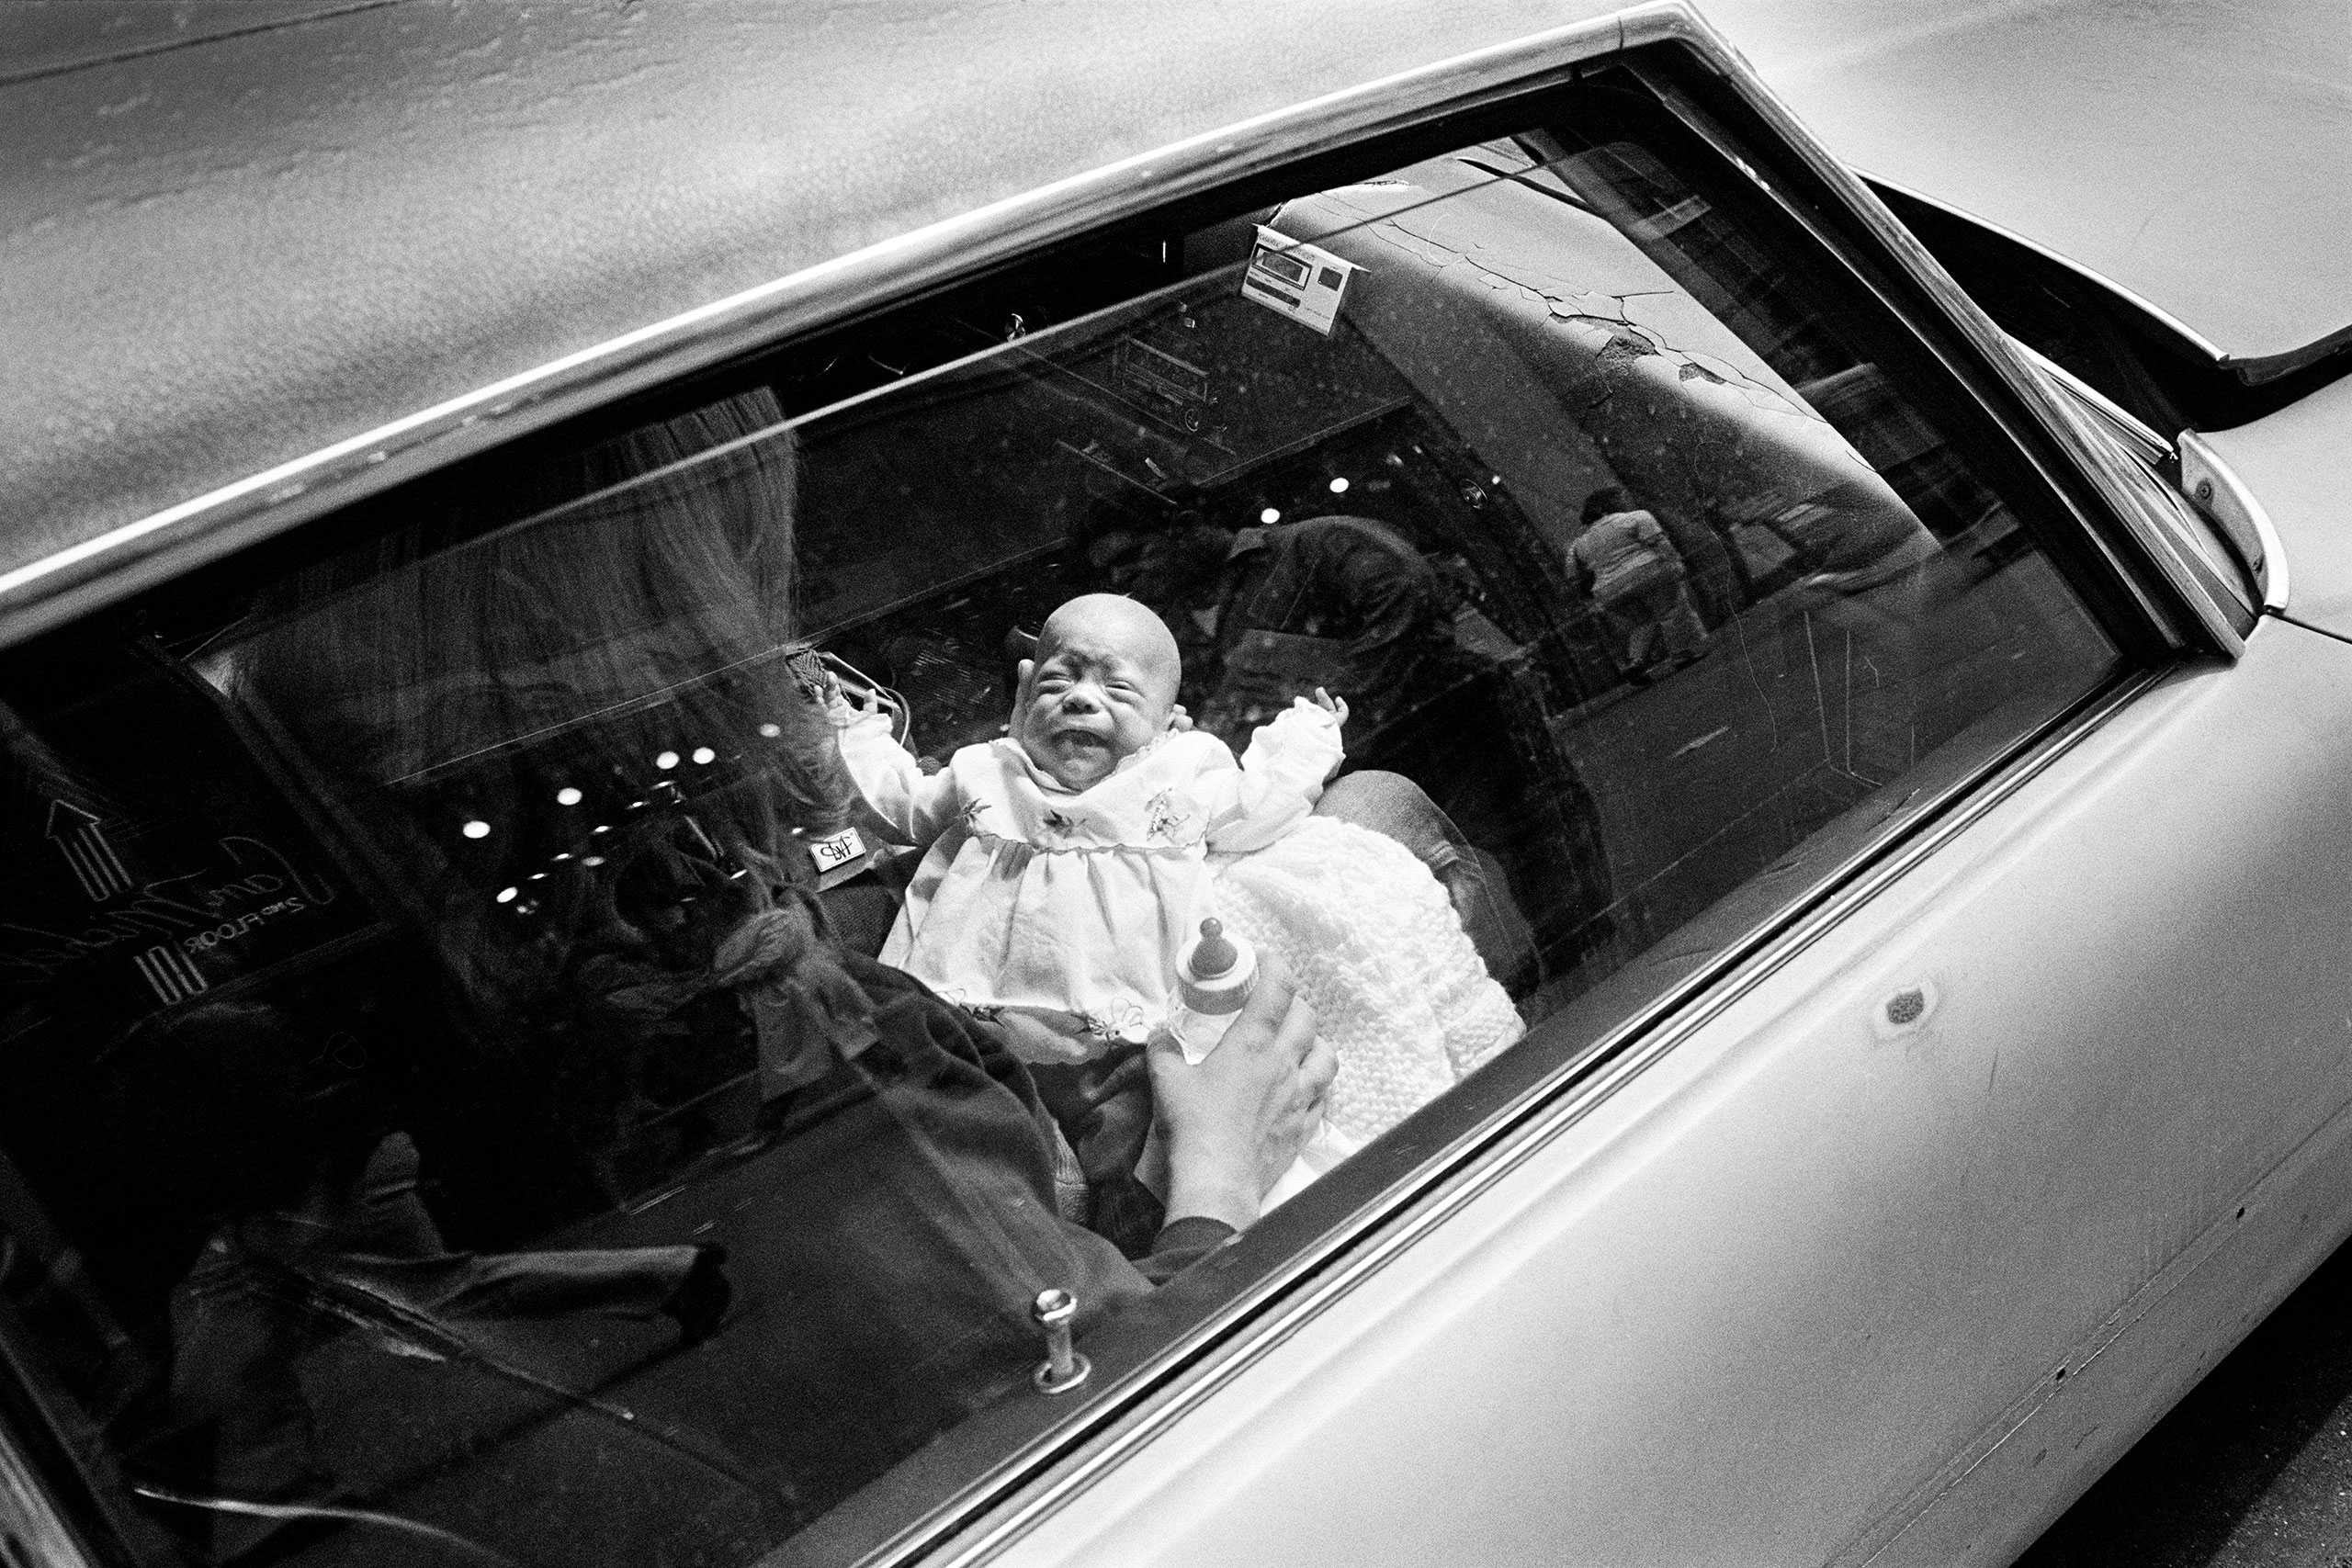 Baby 5th Ave. & 32nd St., NYC, 1982